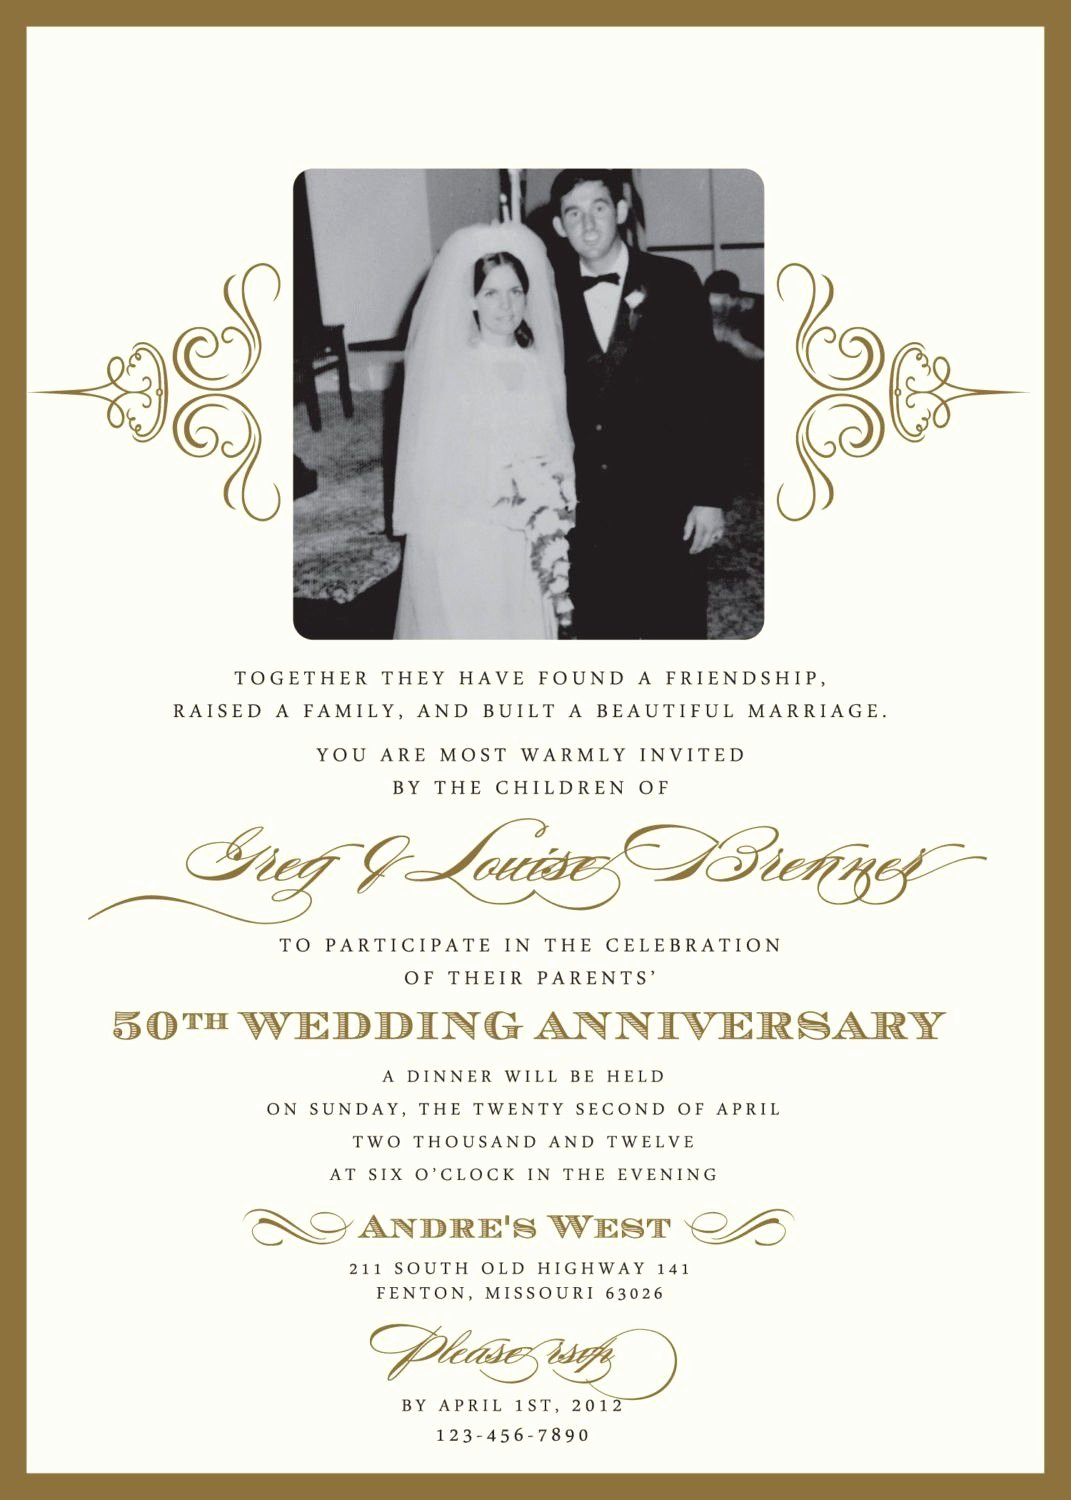 Wedding Anniversary Invitation Template Best Of Golden Wedding Anniversary Invitation Golden Wedding